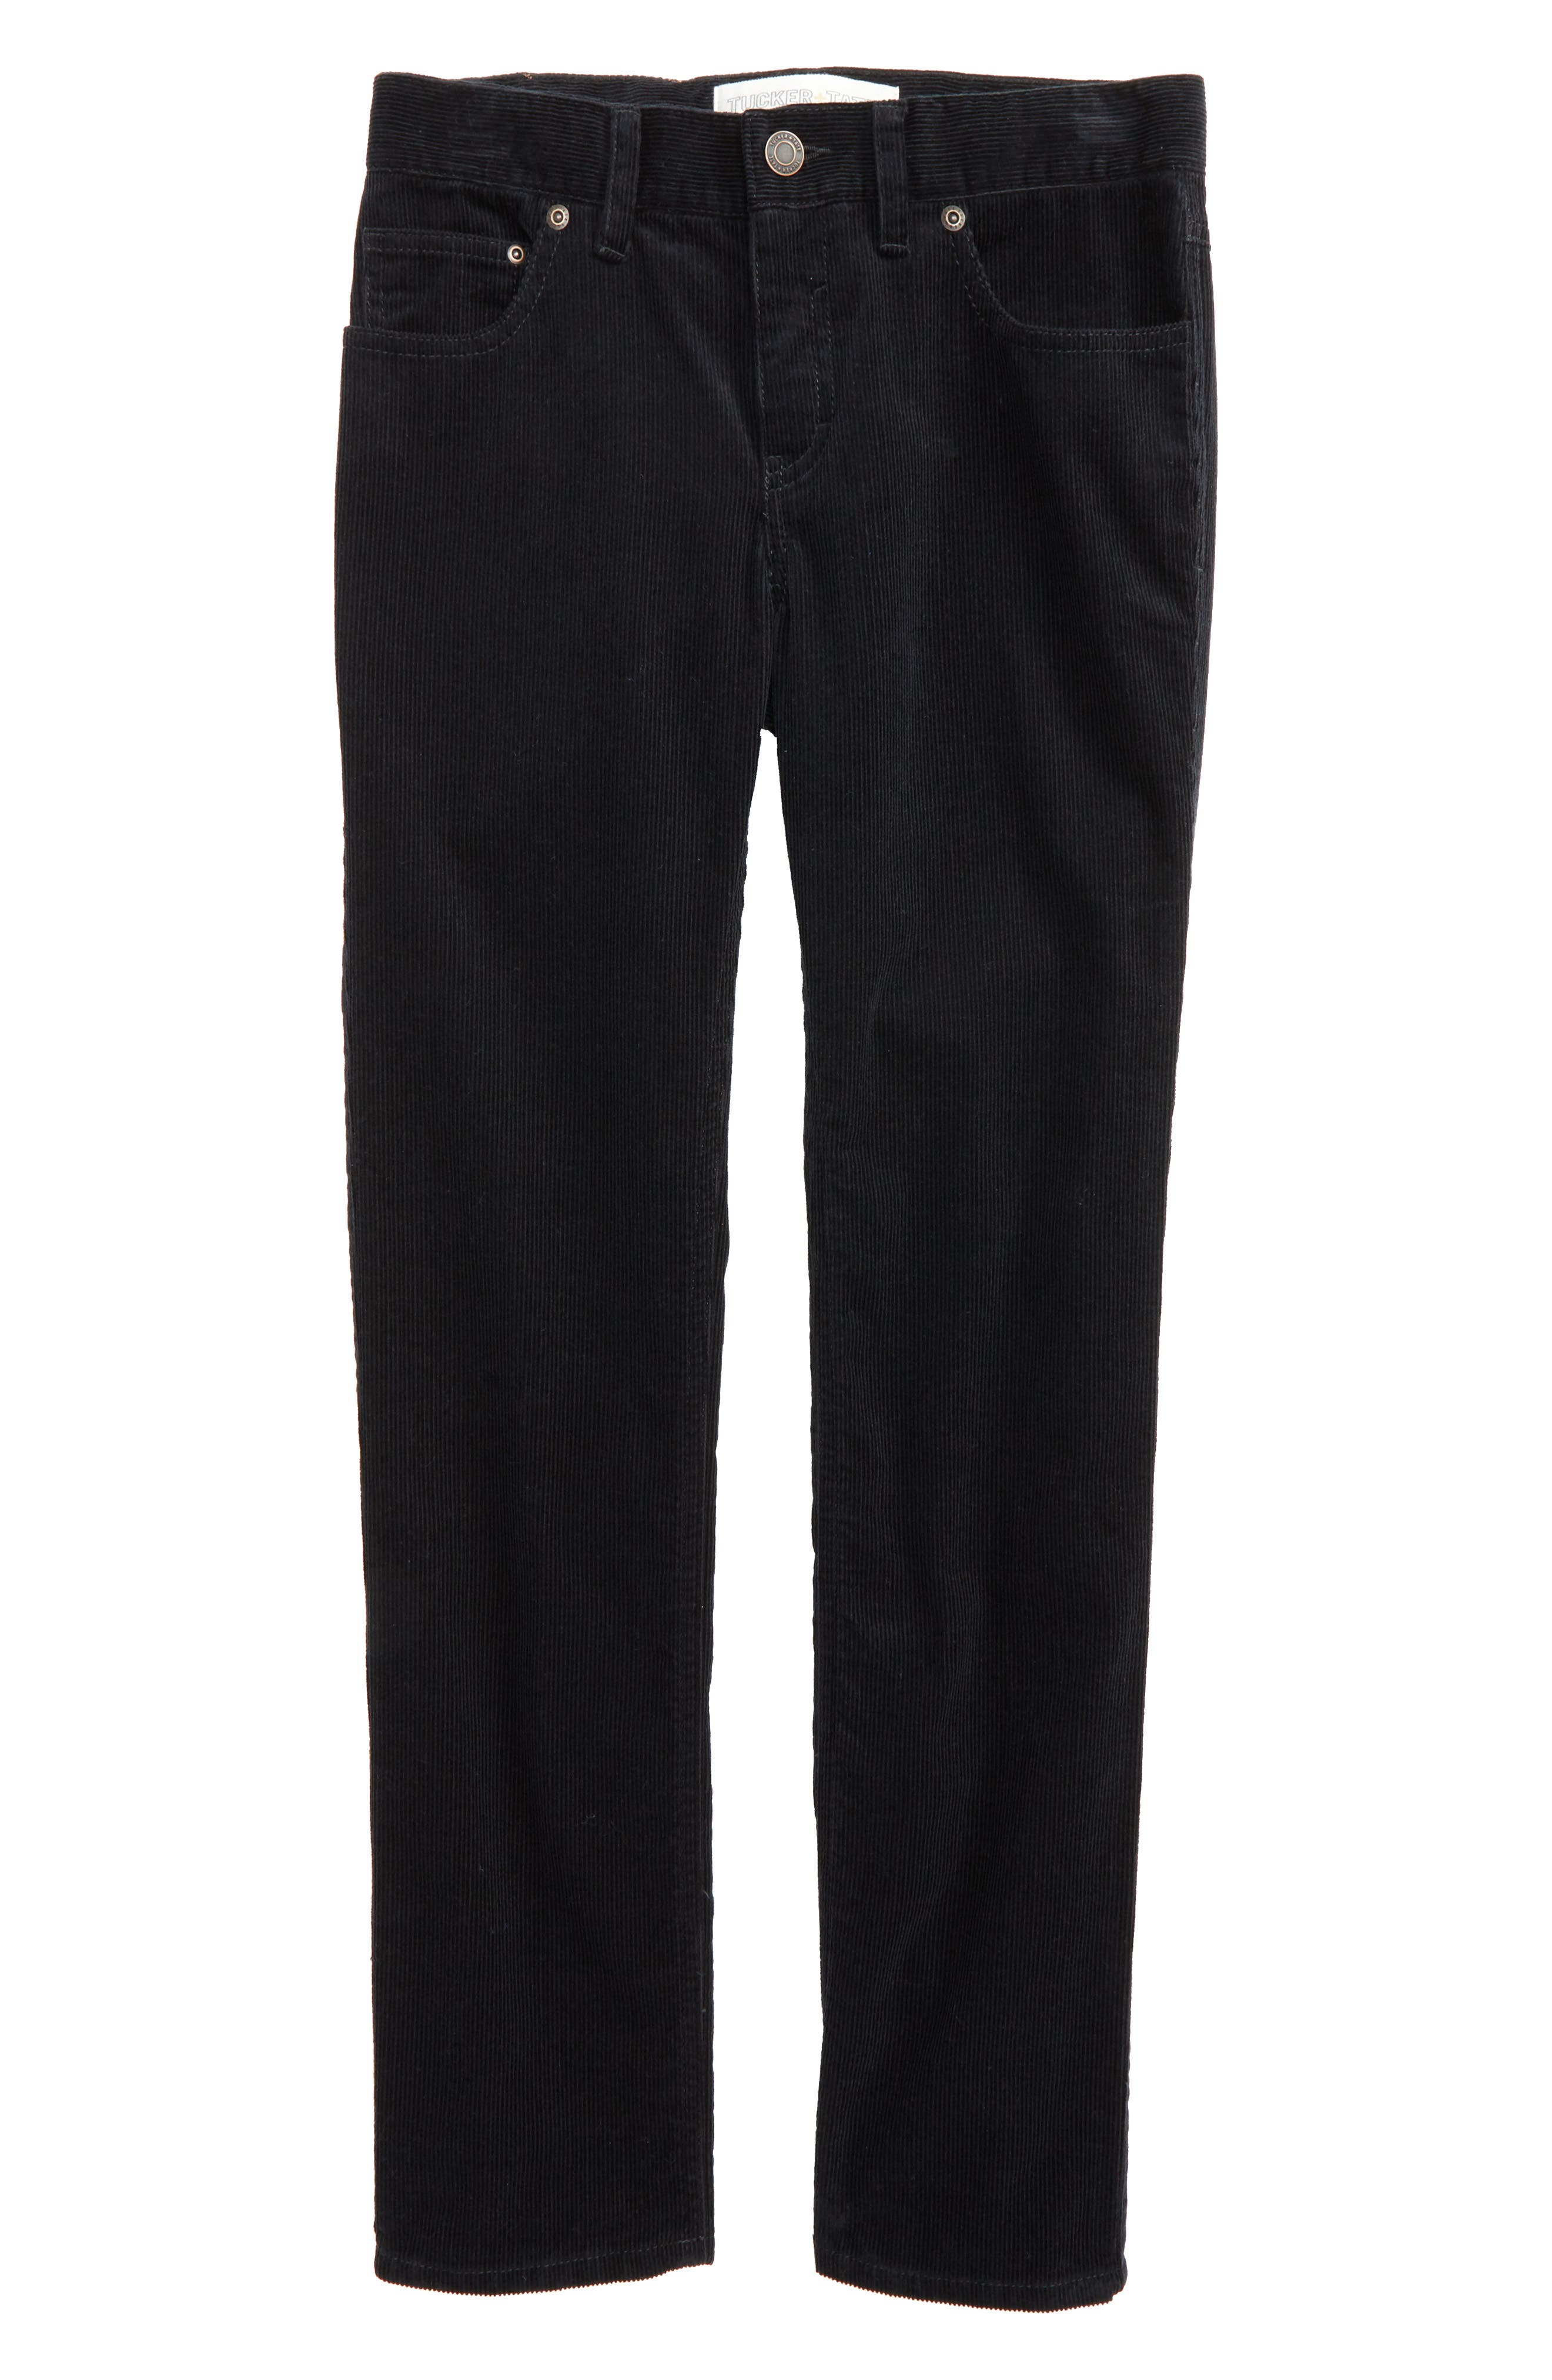 Main Image - Tucker + Tate 'Townsend' Corduroy Pants (Little Boys & Big Boys)